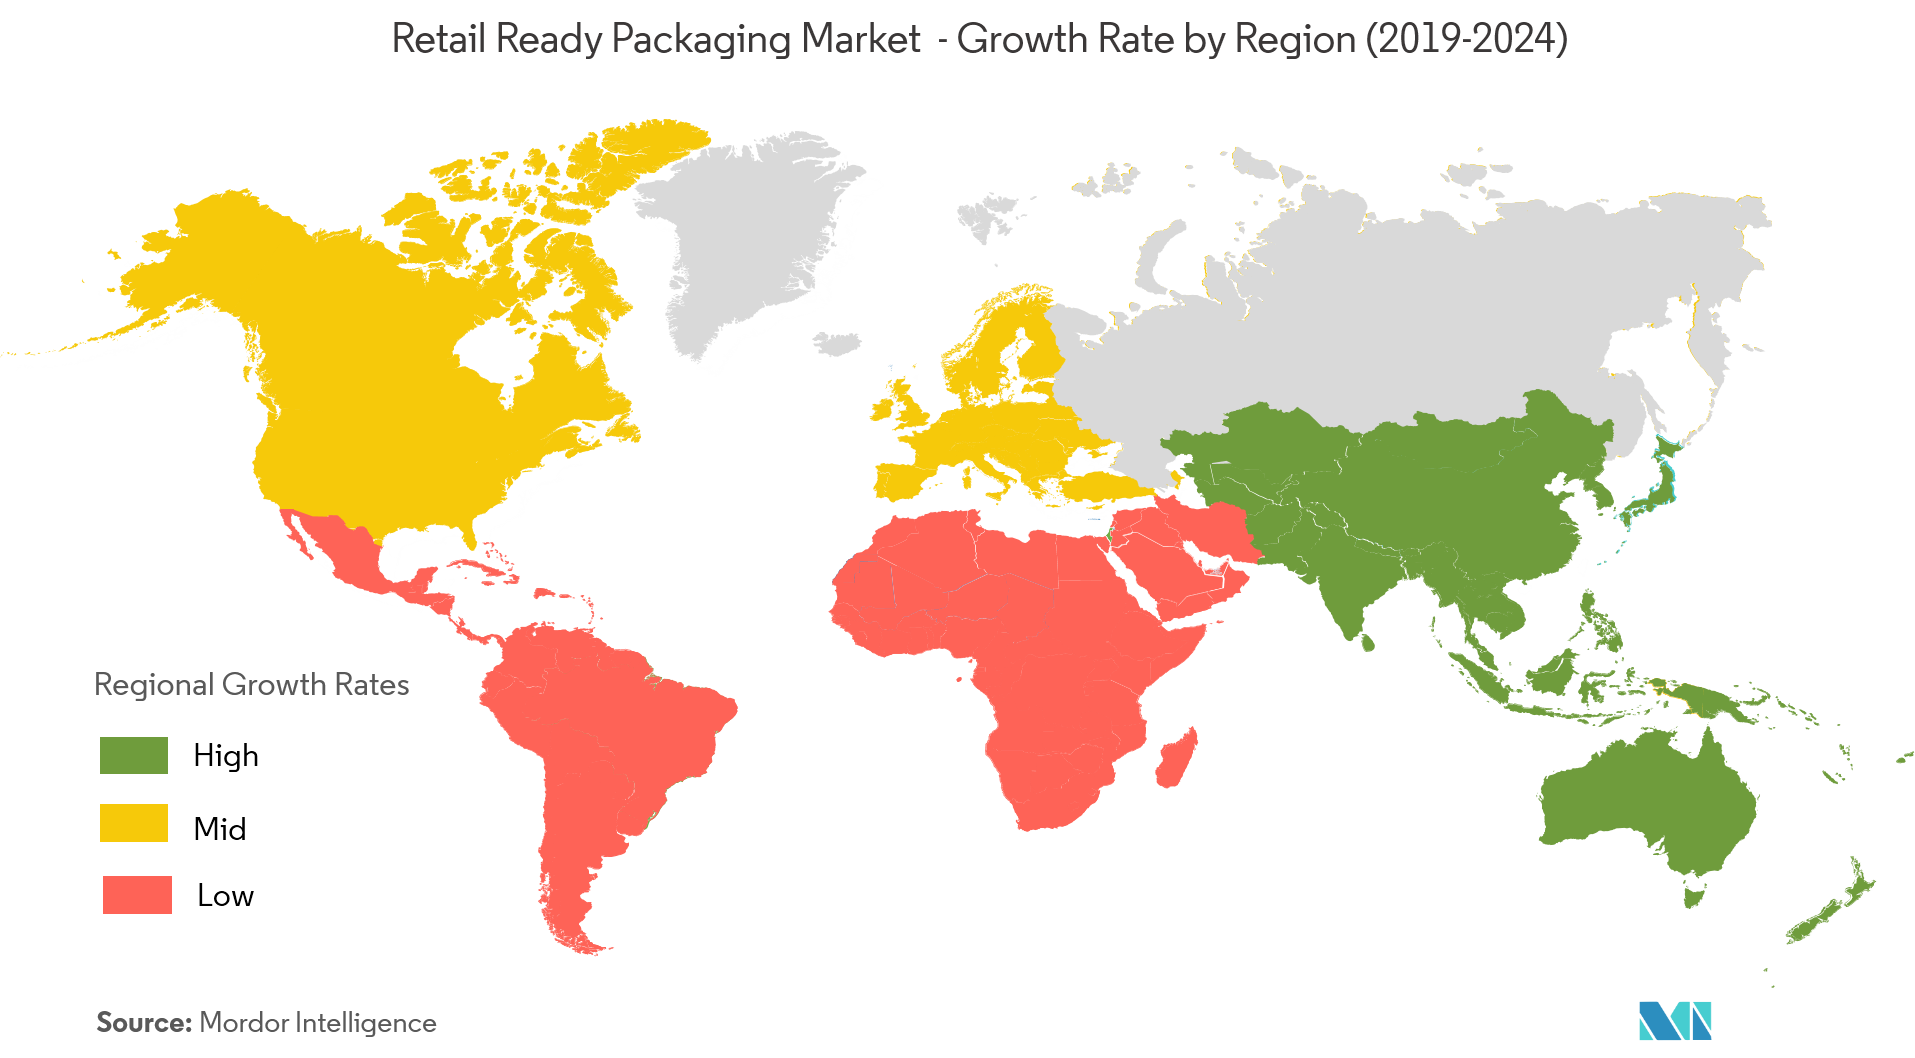 Retail Ready Packaging Market Growth Rate